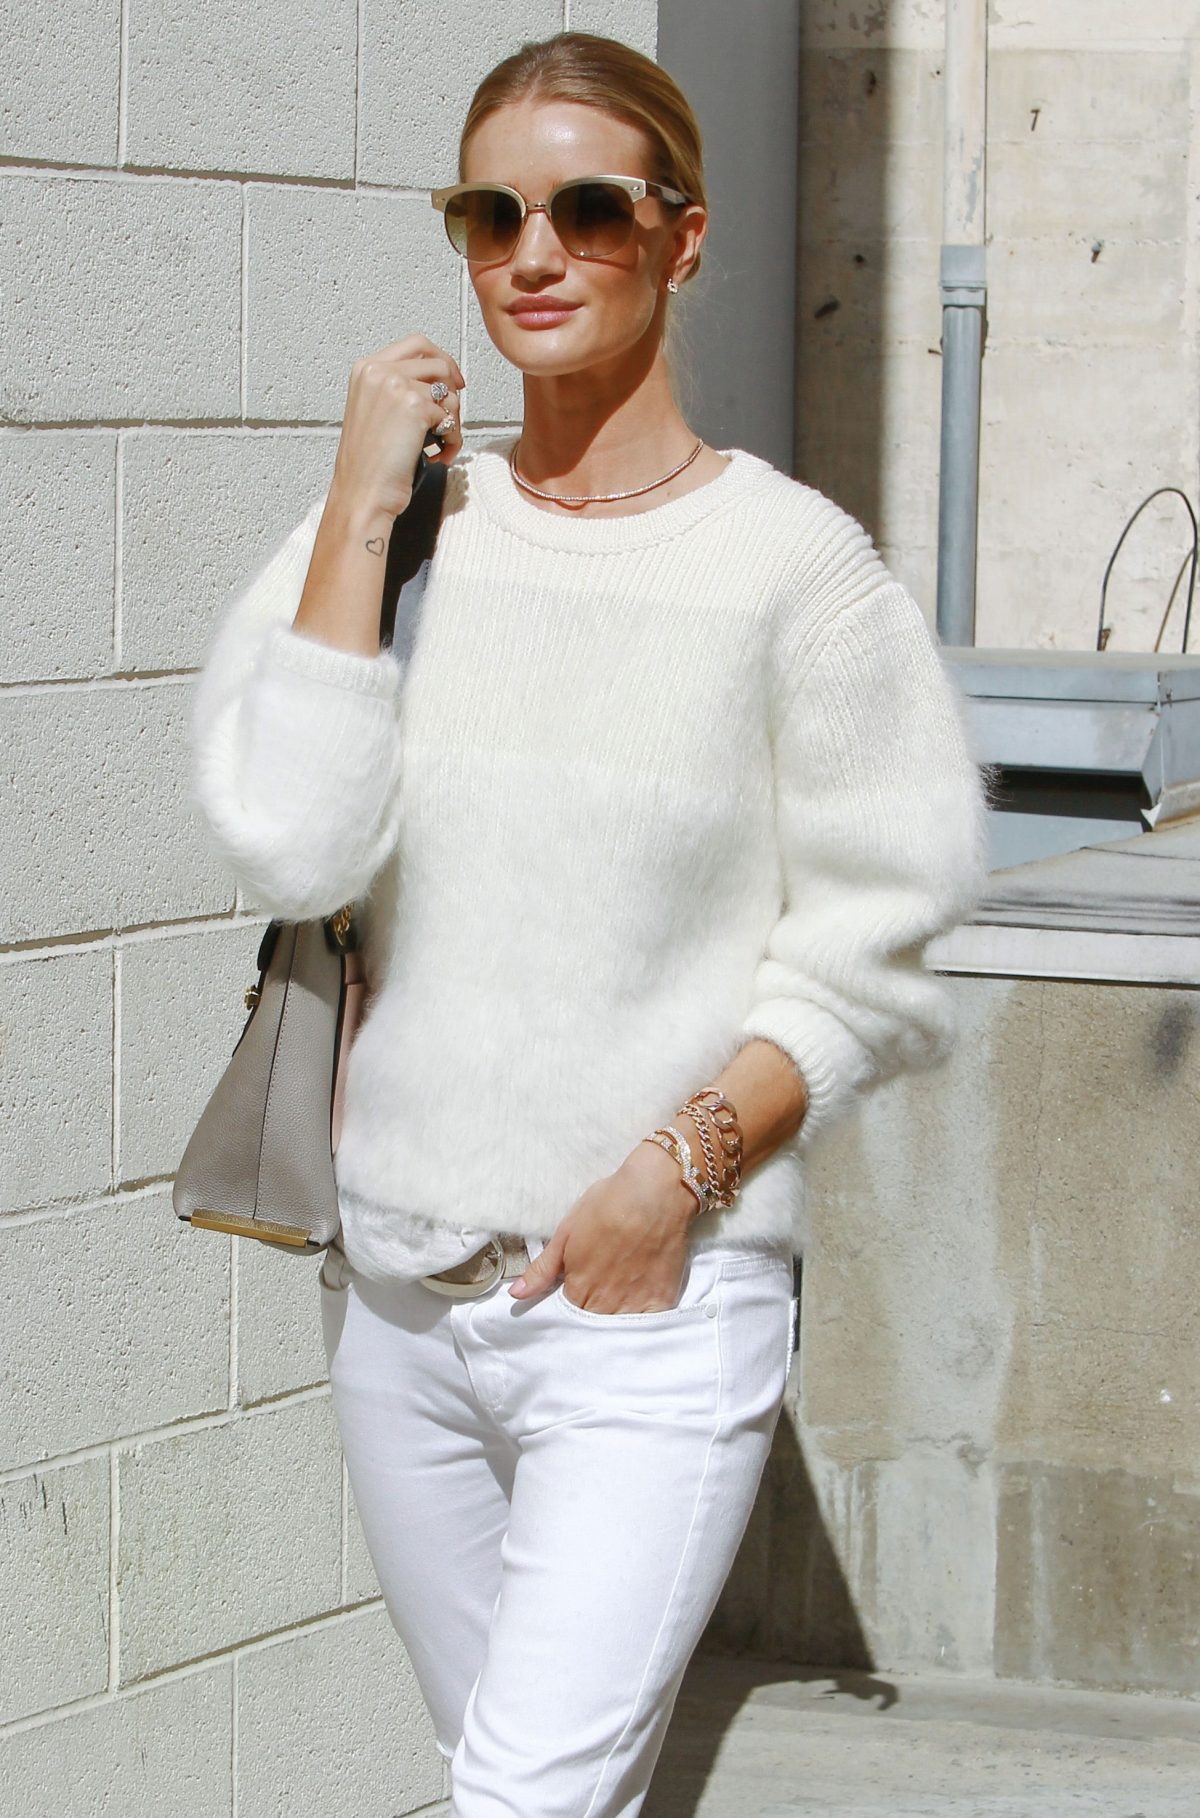 Celebrities and supermodels looking gorgeous and glamorous in their soft, woolly …